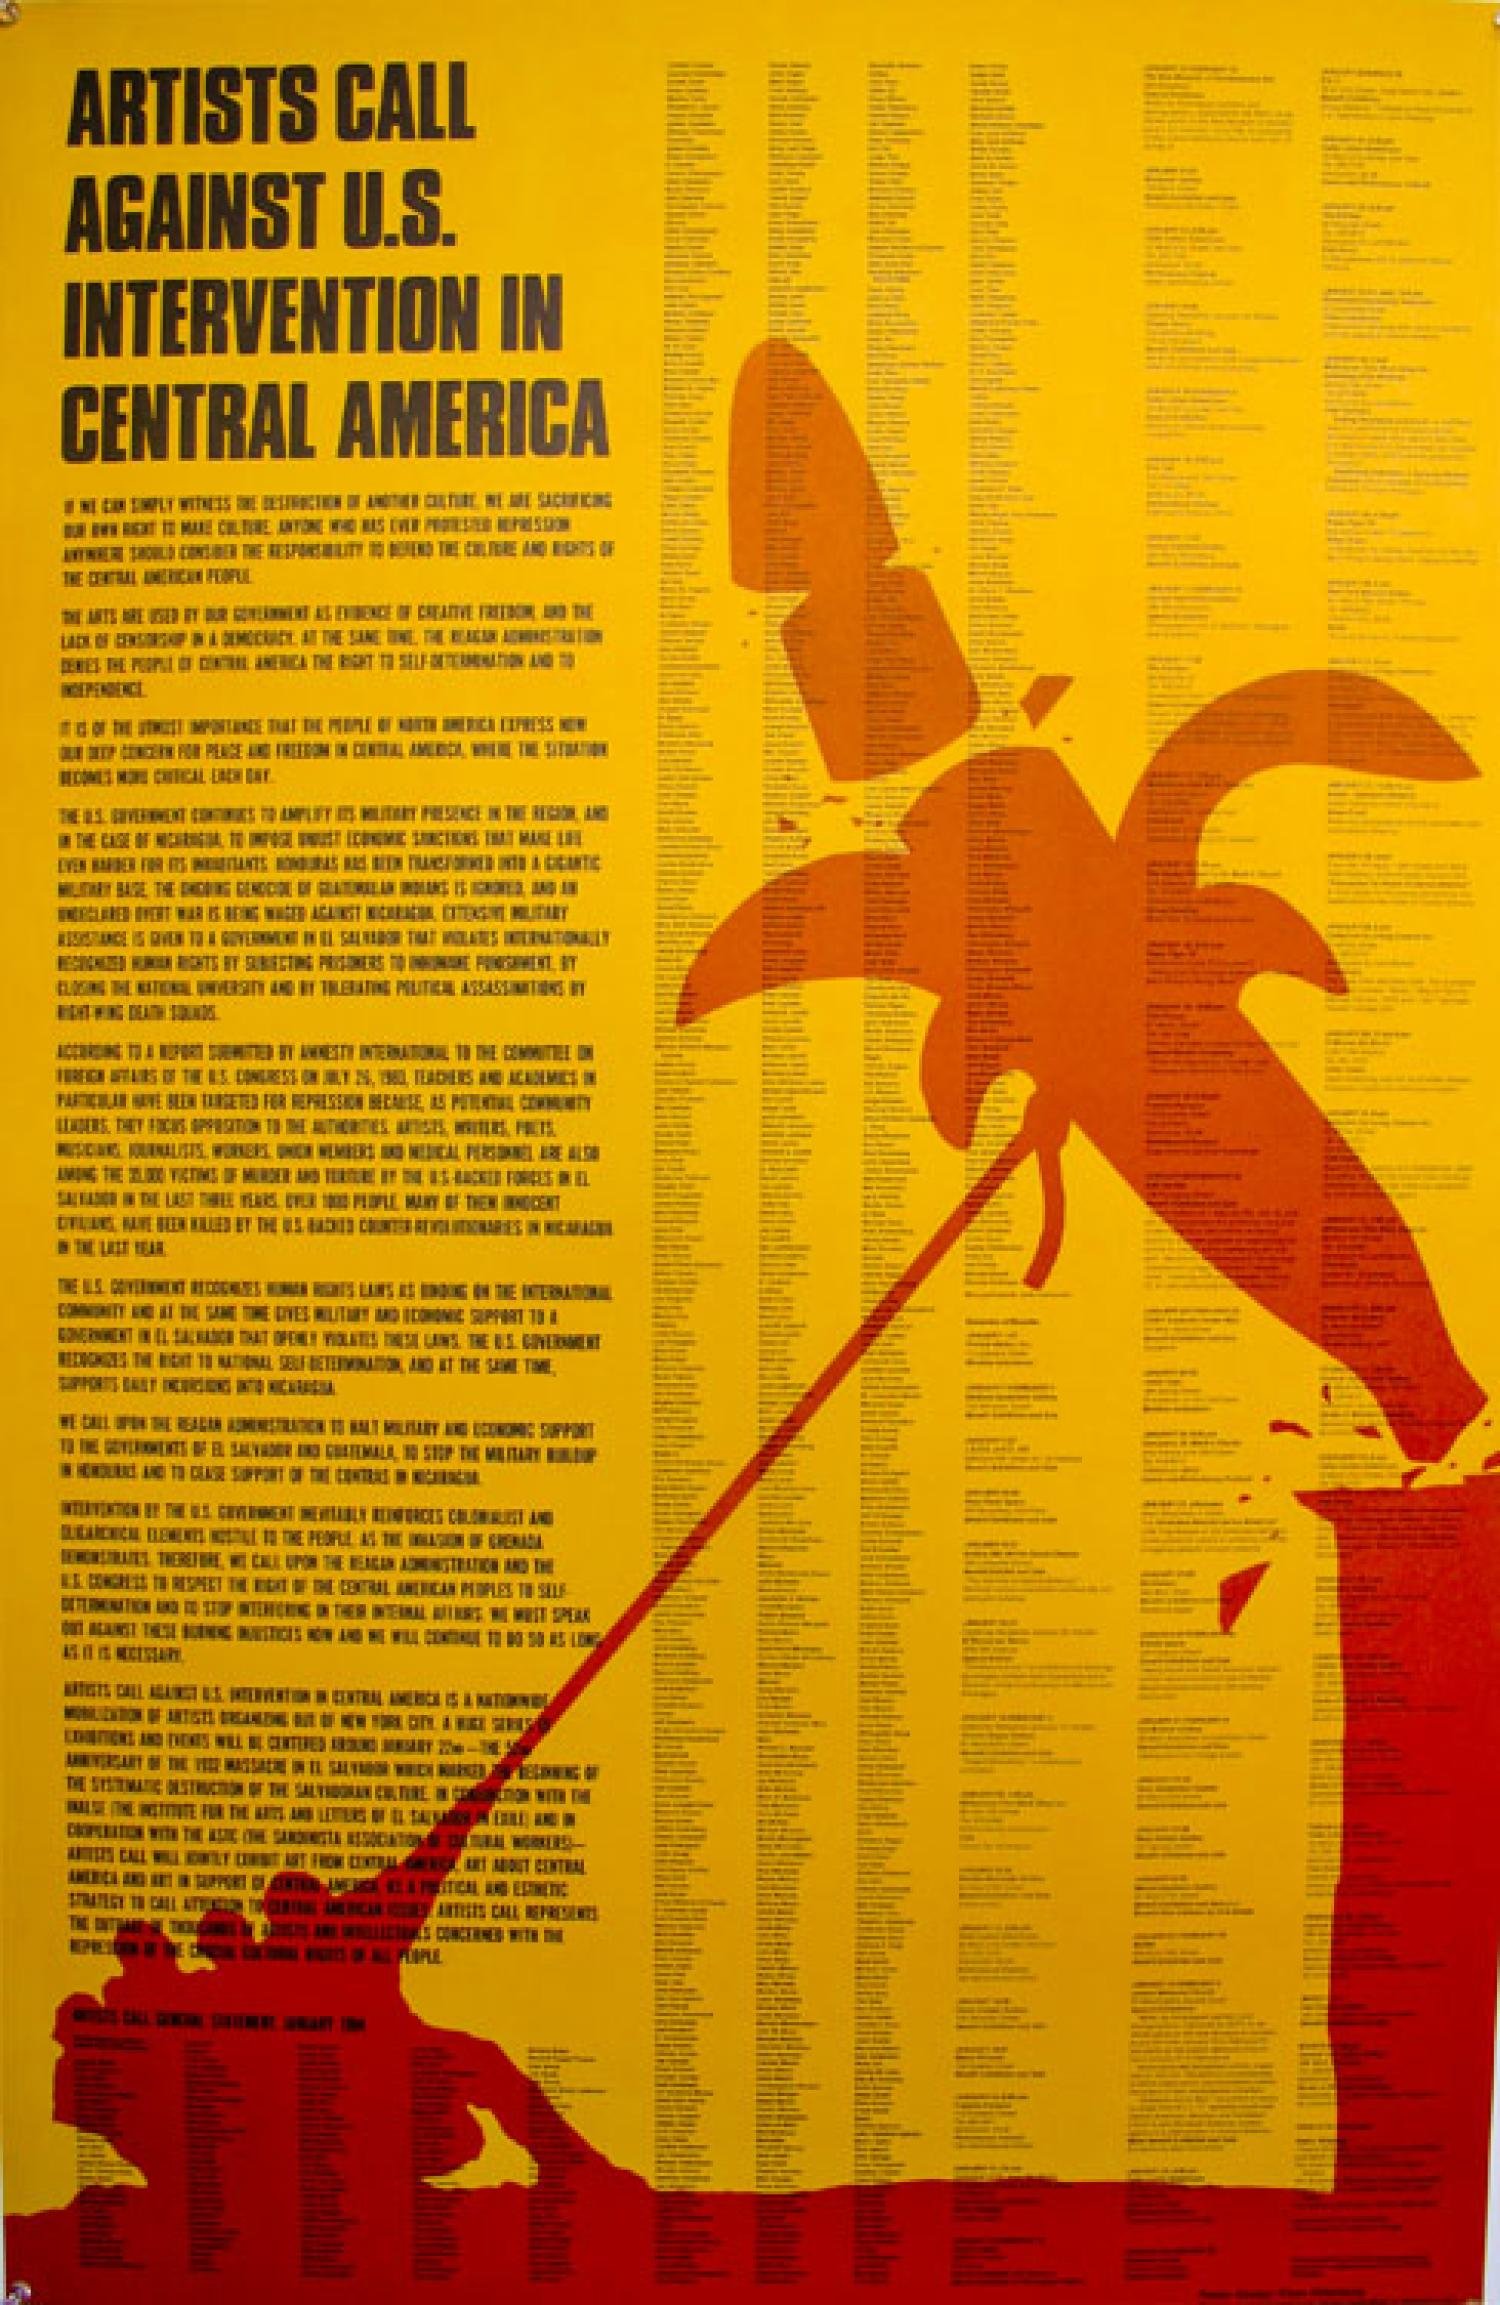 Claes Oldenburg, Artists Call Against Intervention in Central America, artist's poster